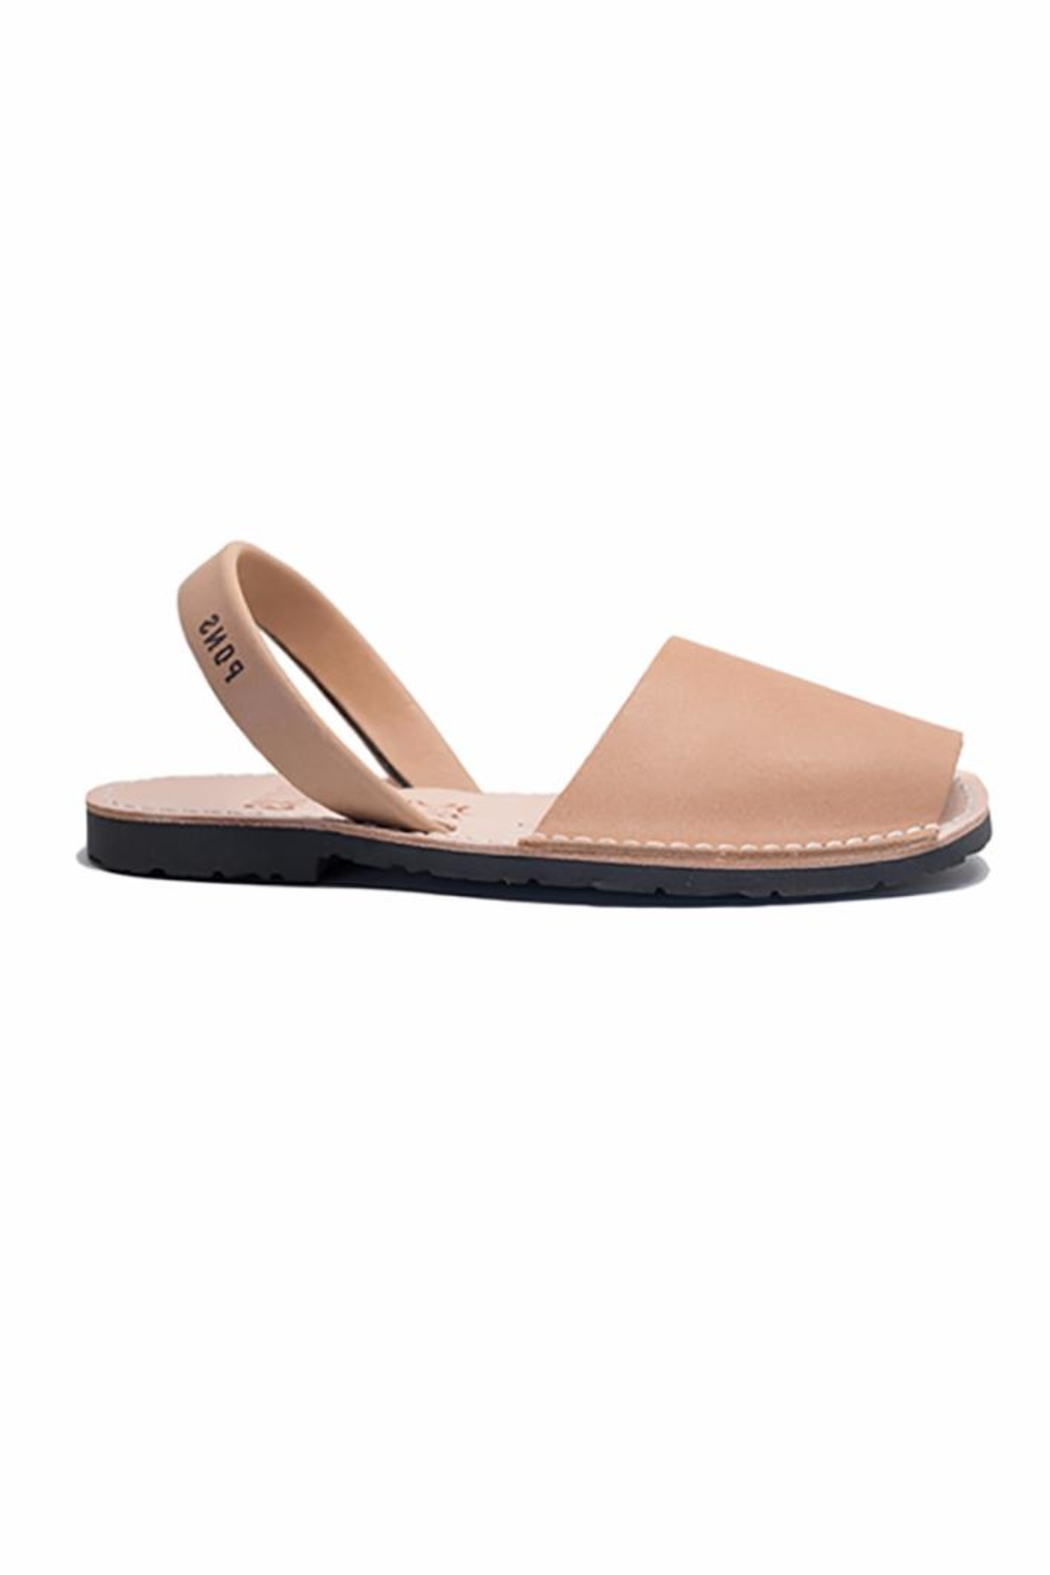 Pons Avarca Spanish Avarcas Sandals from California by ...